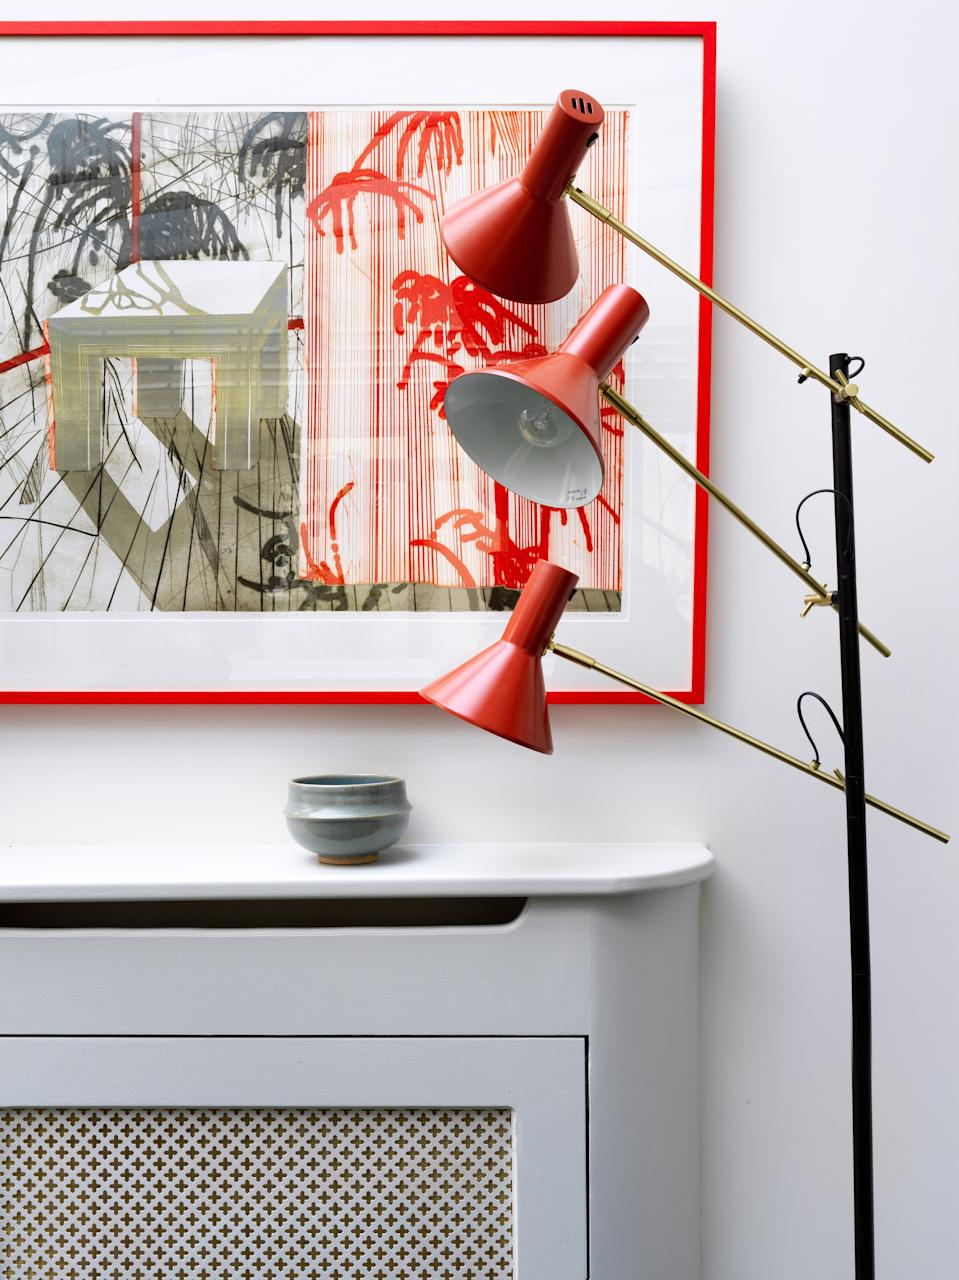 The red lamp was a cheap find from Habitat in the U.K. and works well against the client's abstract artwork.